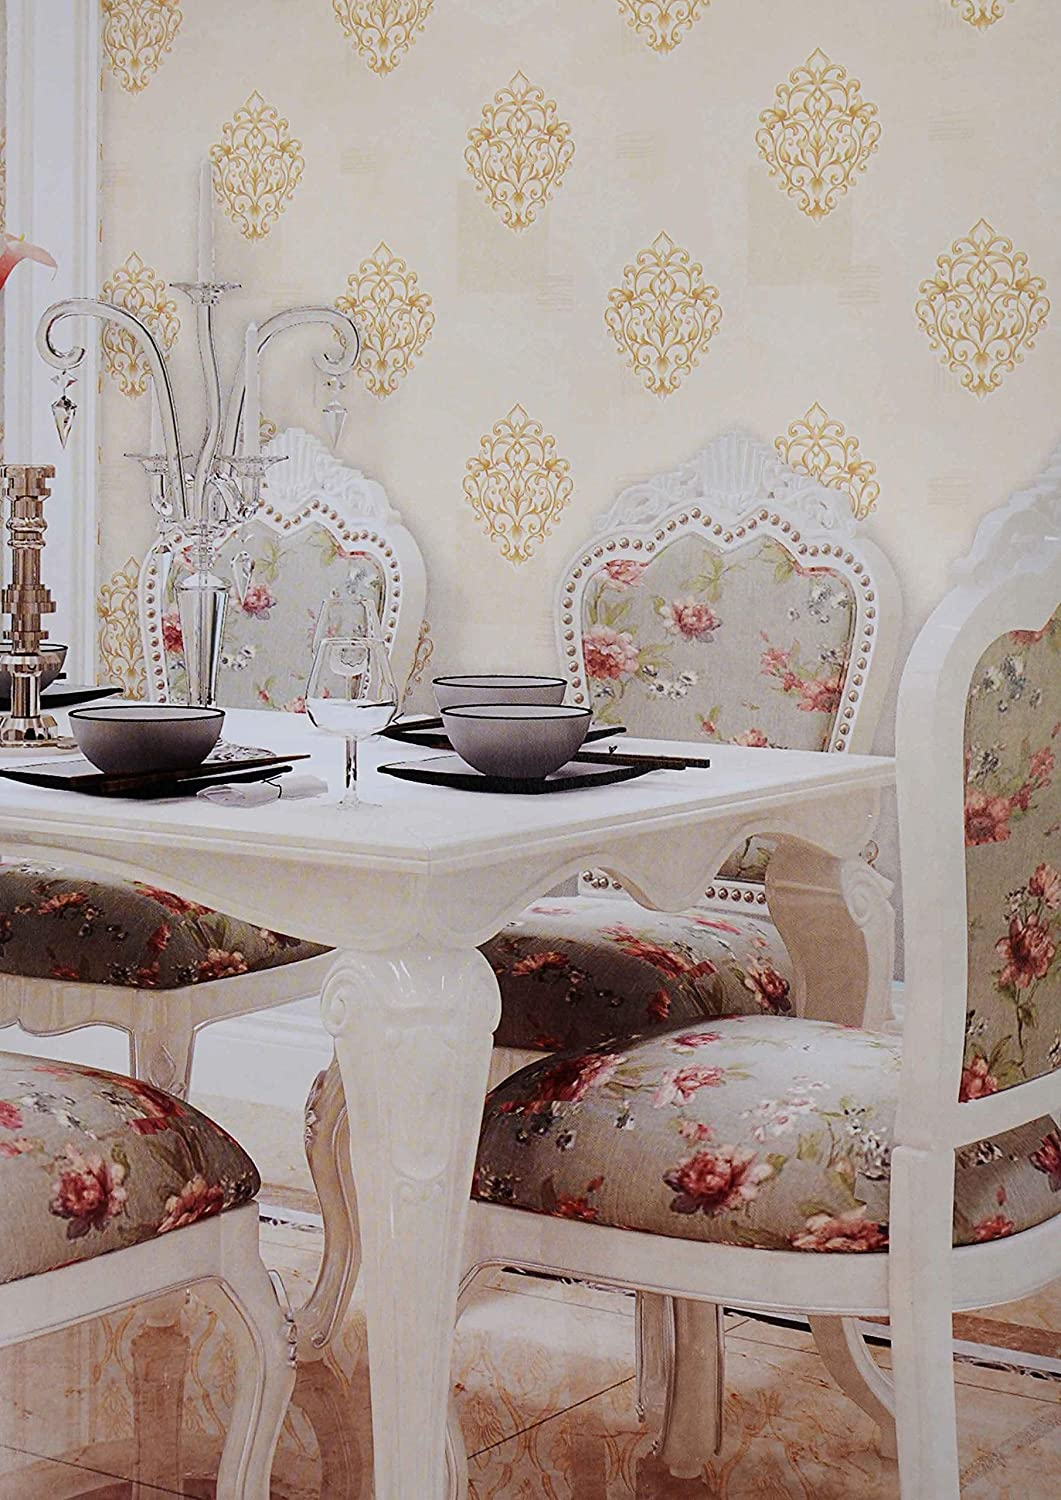 asri interiors exclusive designer home wallpaper roll 57 sq feet for living room decoration bedroom restaurant tv background hall amazon in home kitchen asri interiors exclusive designer home